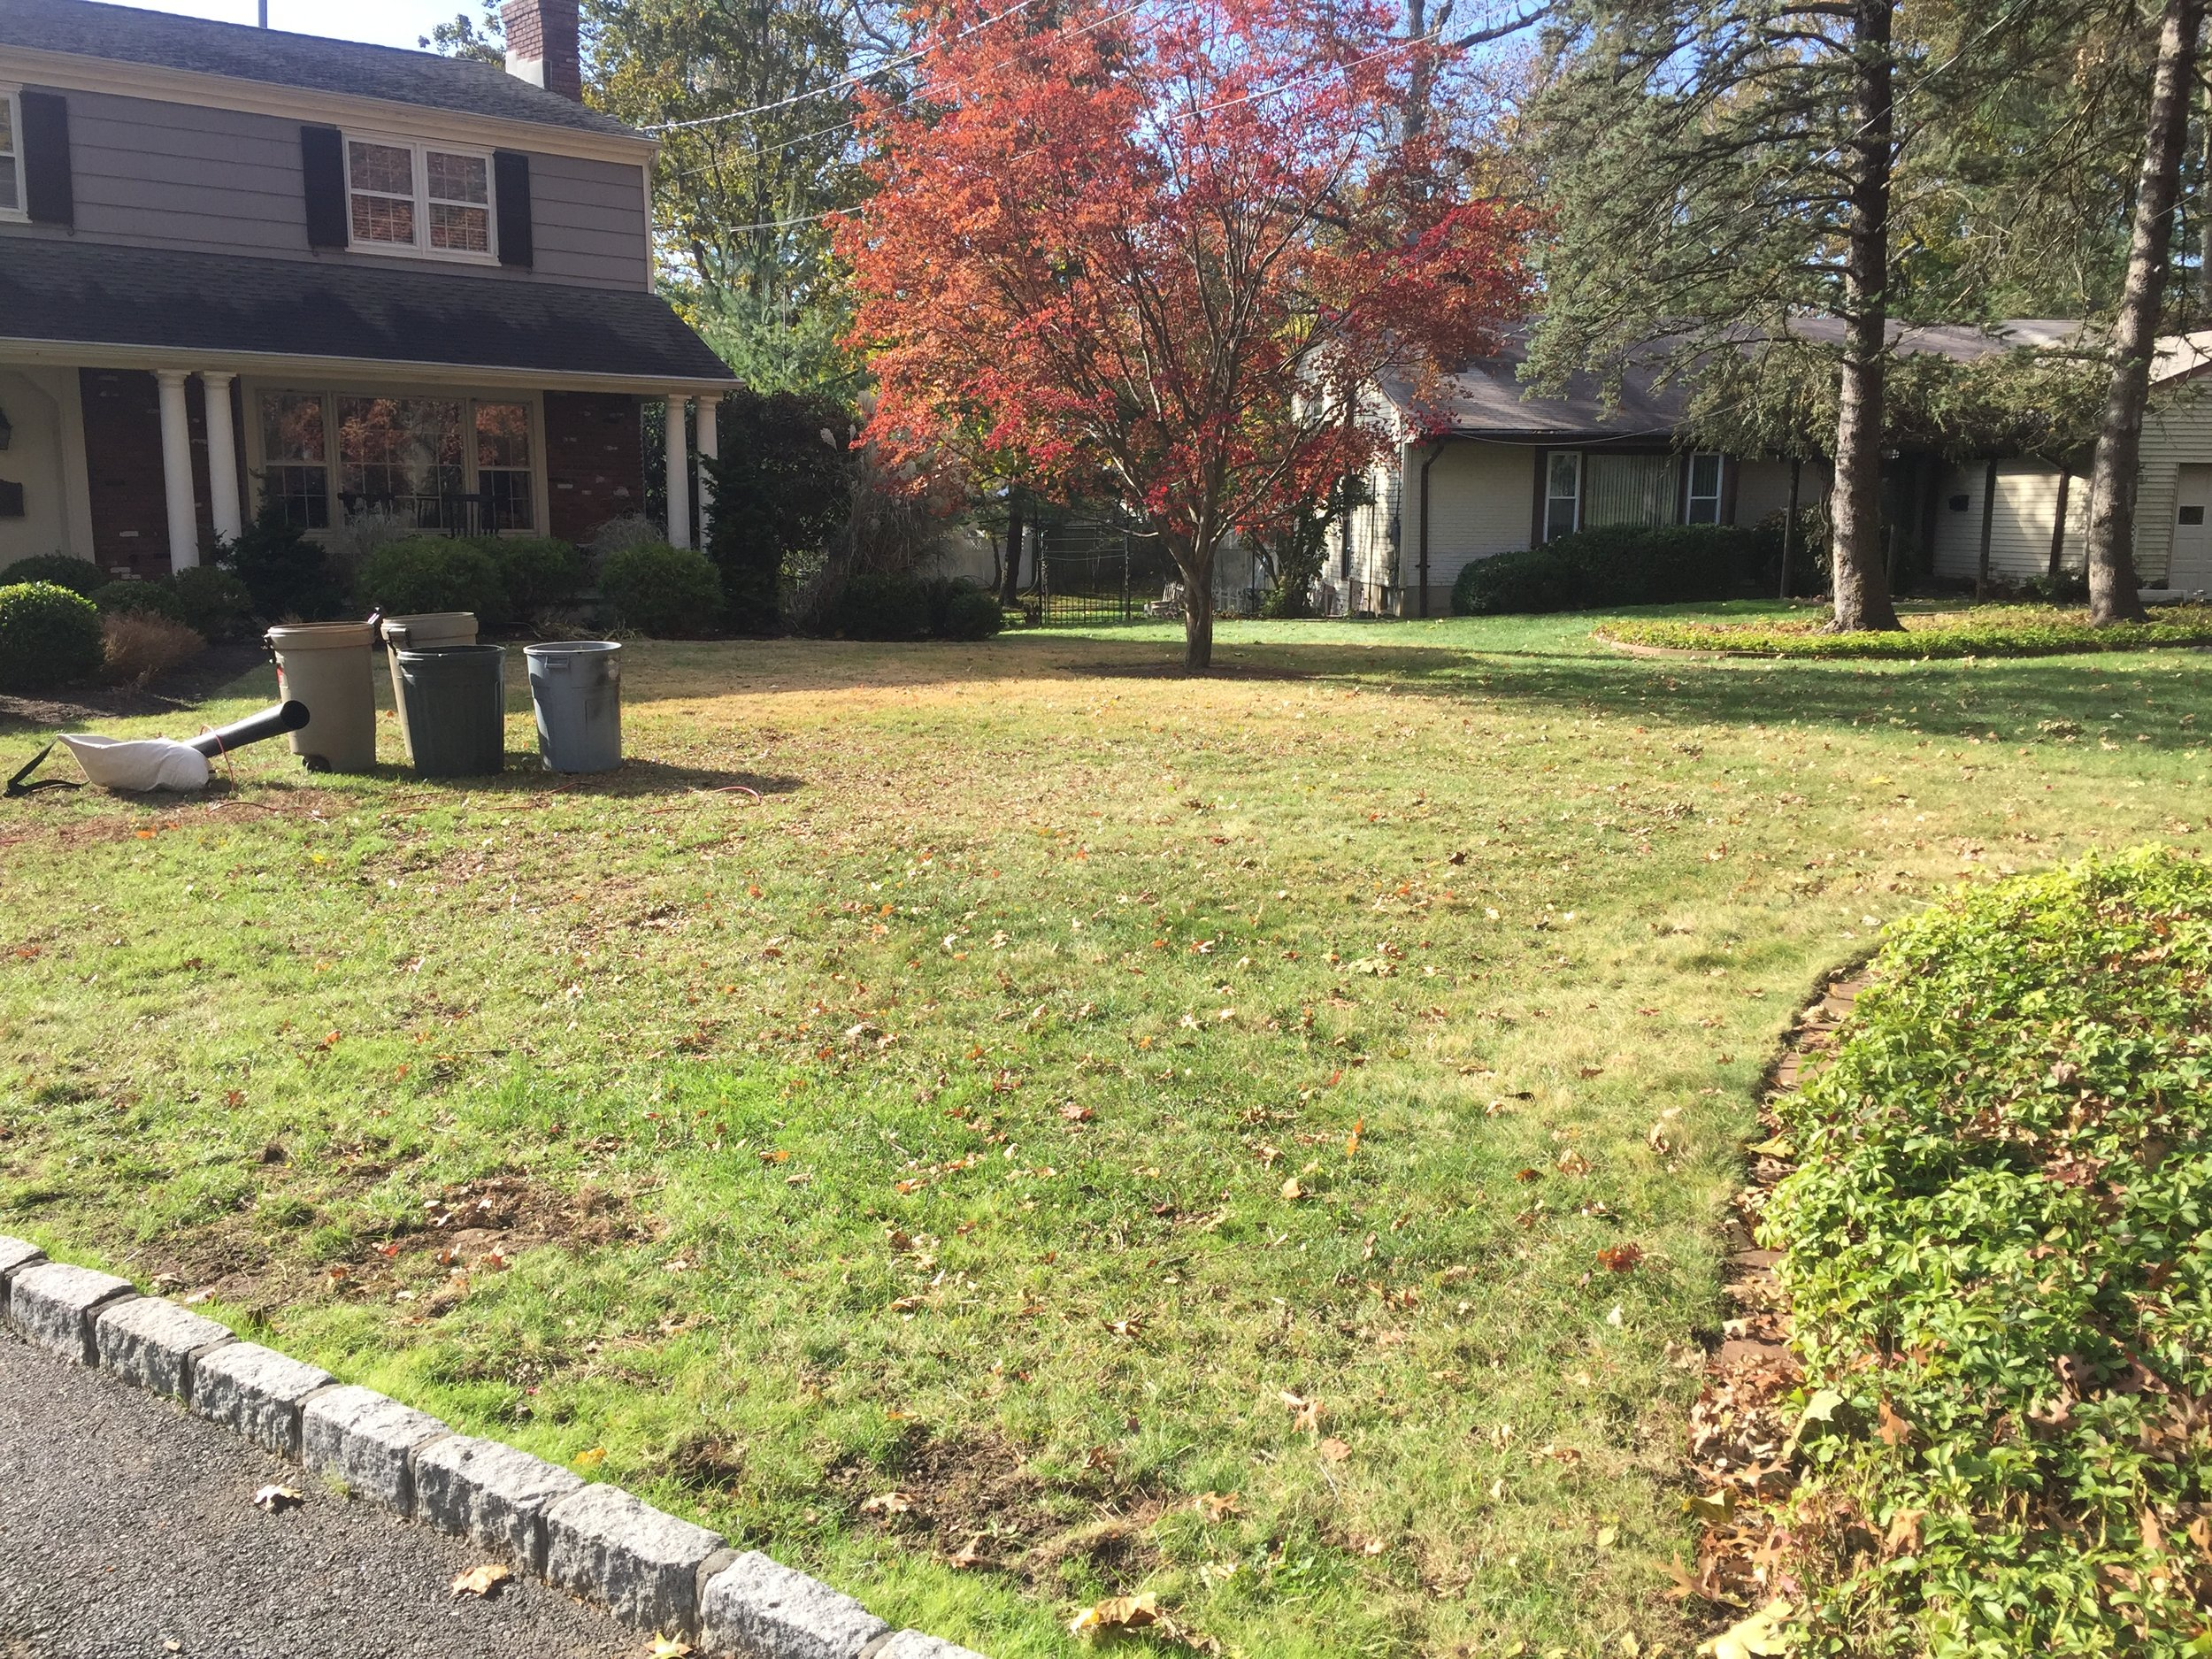 Mulched leaves on the lawn are virtually invisible